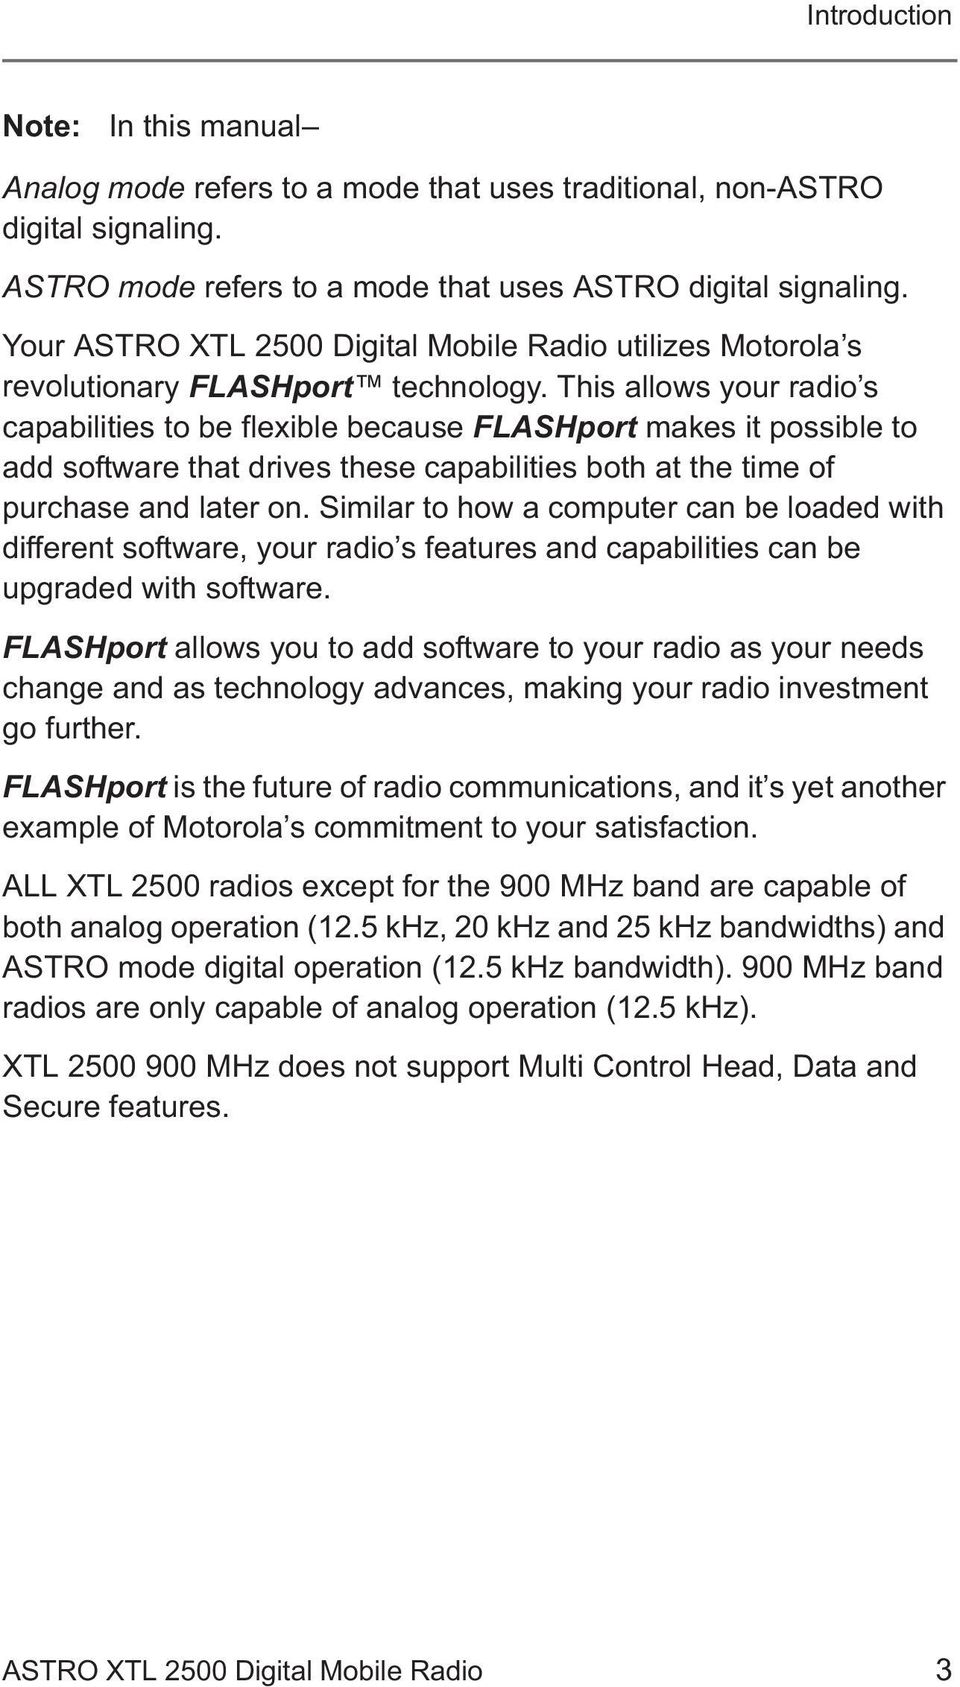 This allows your radio s capabilities to be flexible because FLASHport  makes it possible to add